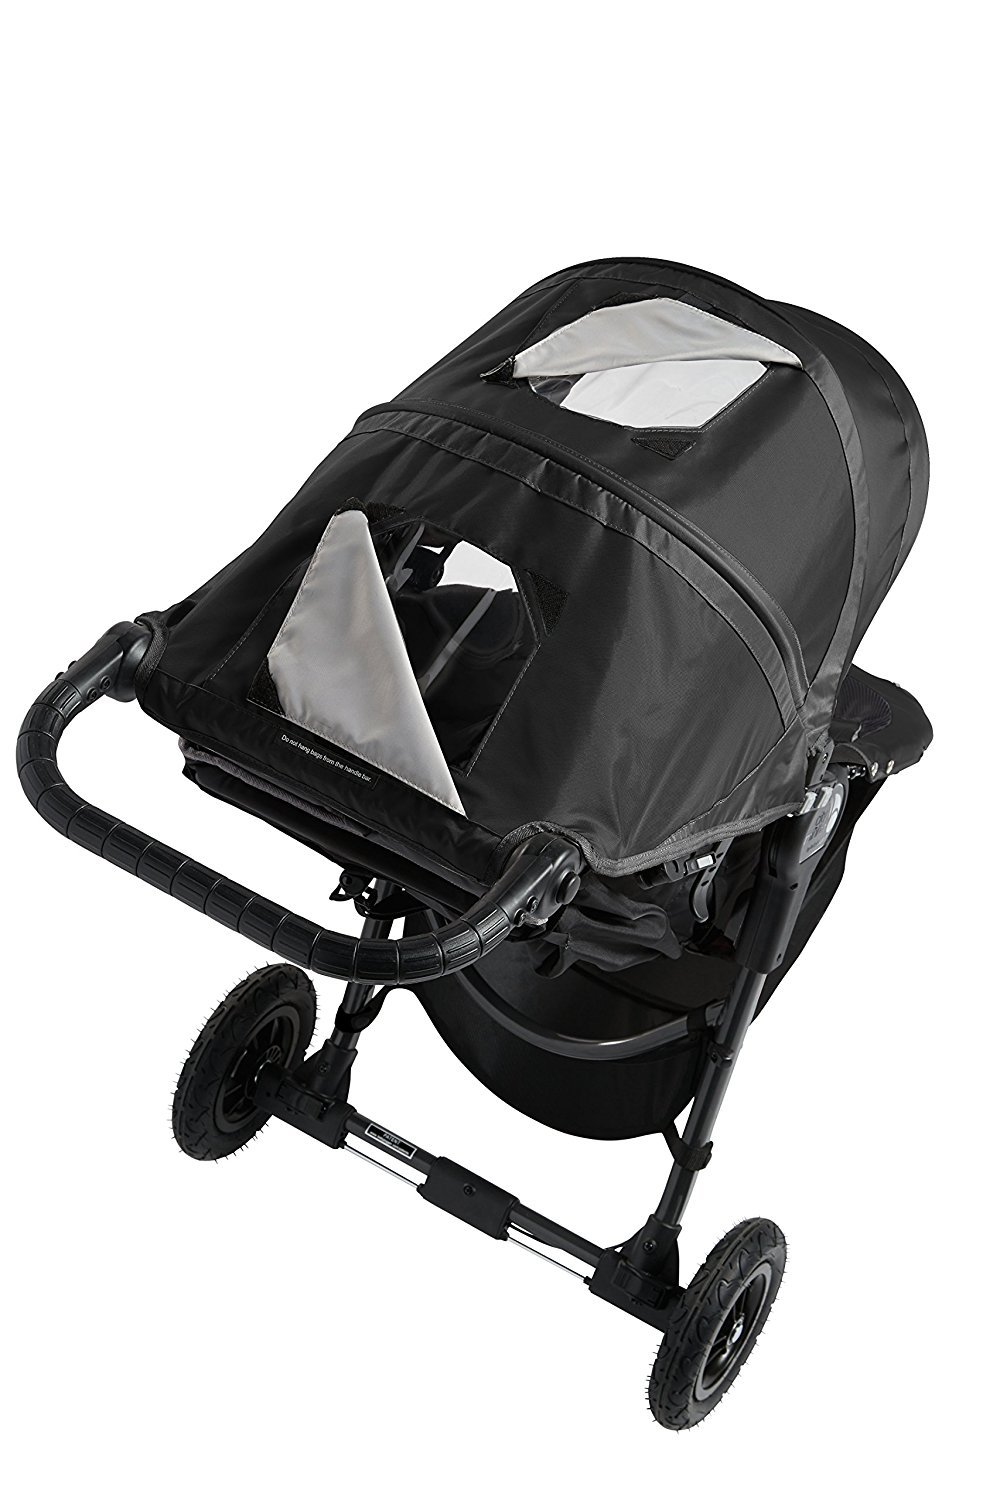 Baby Jogger 2016 City Mini GT Stroller in Black with Parent Console by Baby Jogger (Image #5)